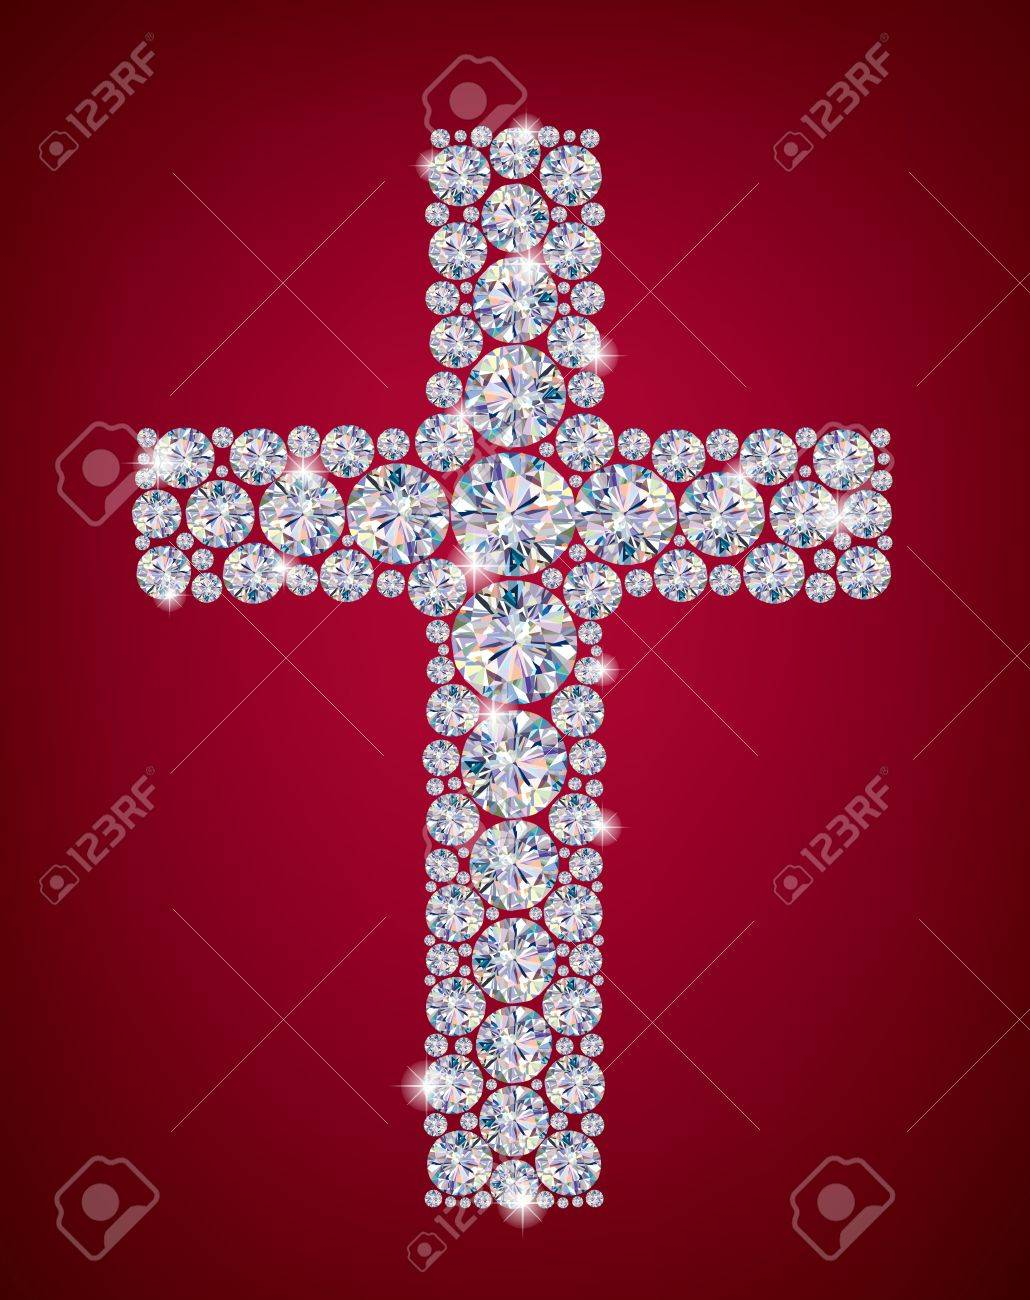 Cross of Diamonds  Contains transparent objects Stock Vector - 17321967